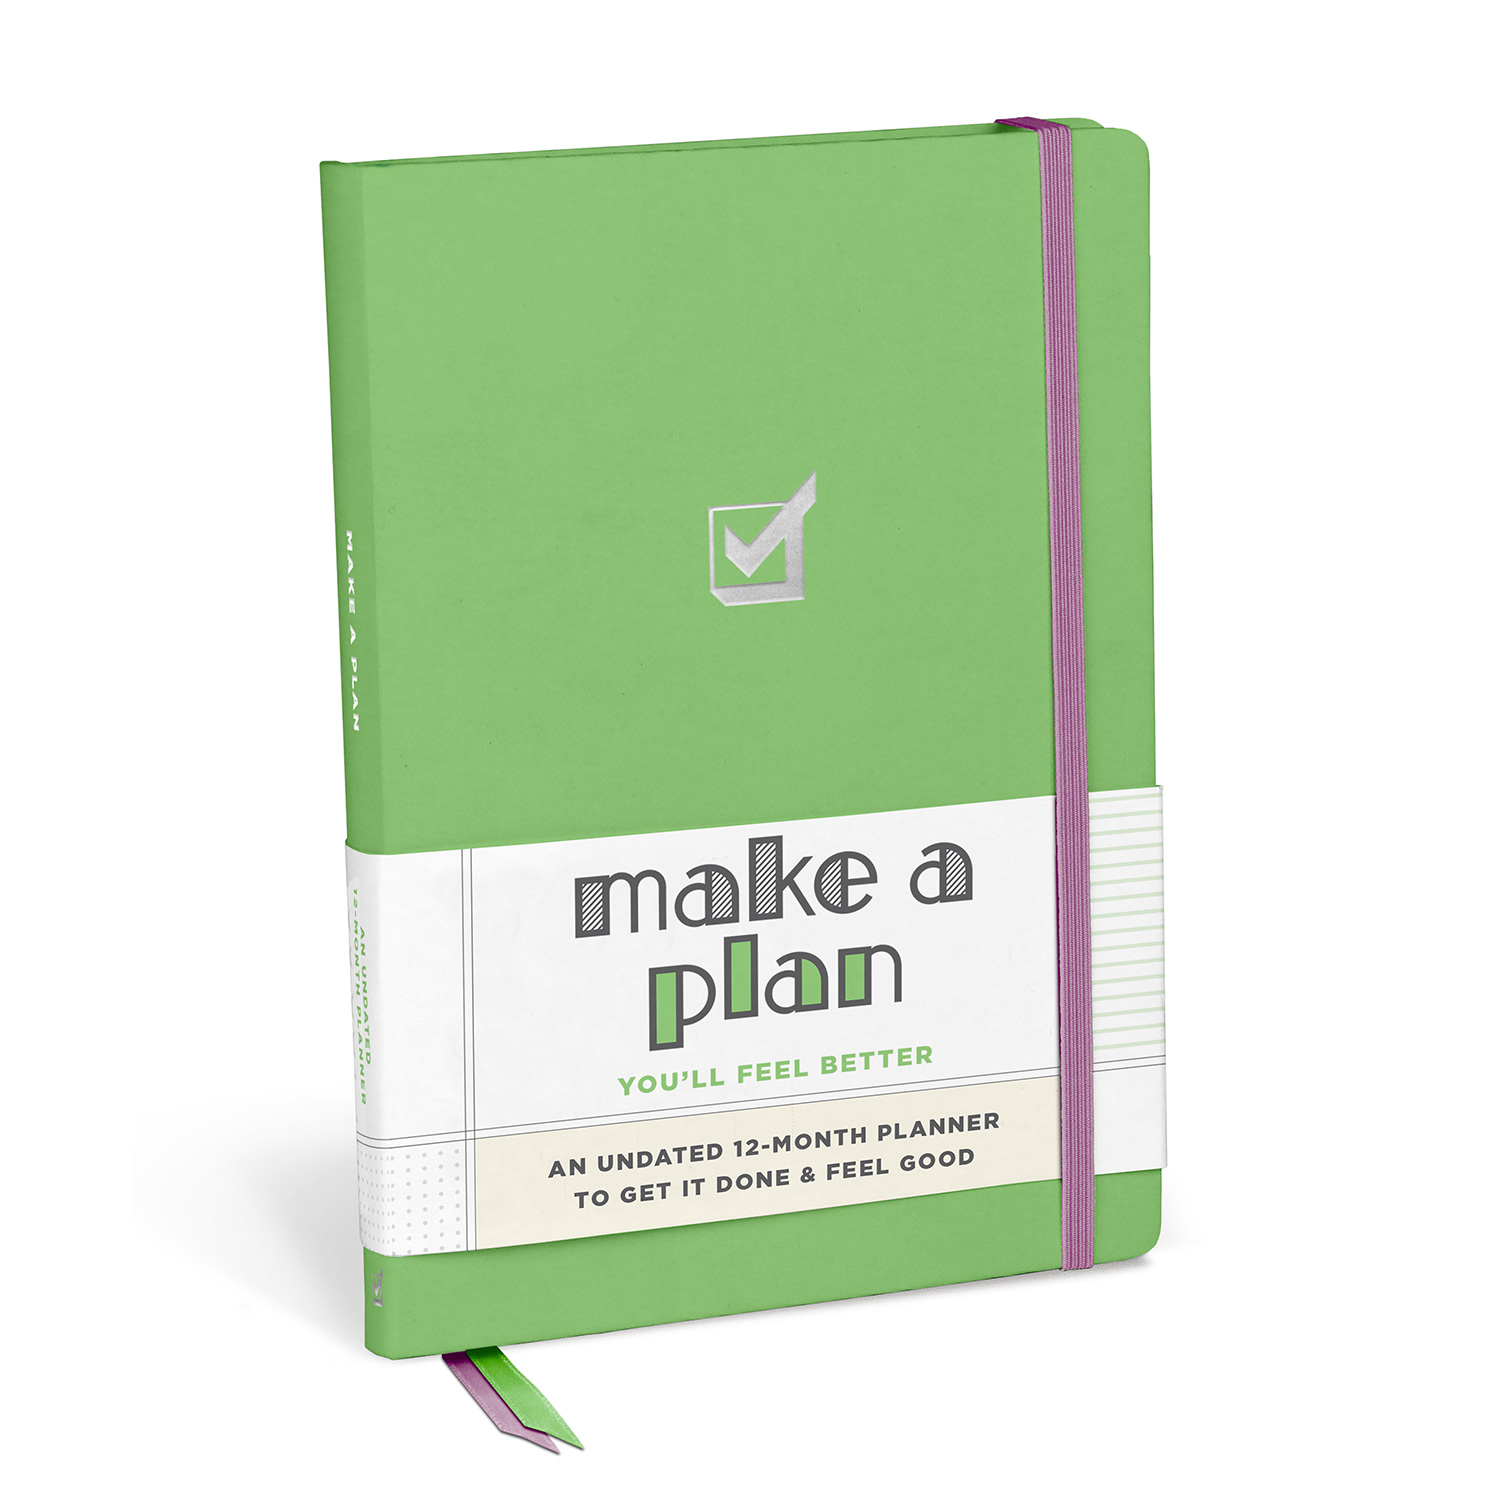 Undated Weekly Planner: Make a Plan!